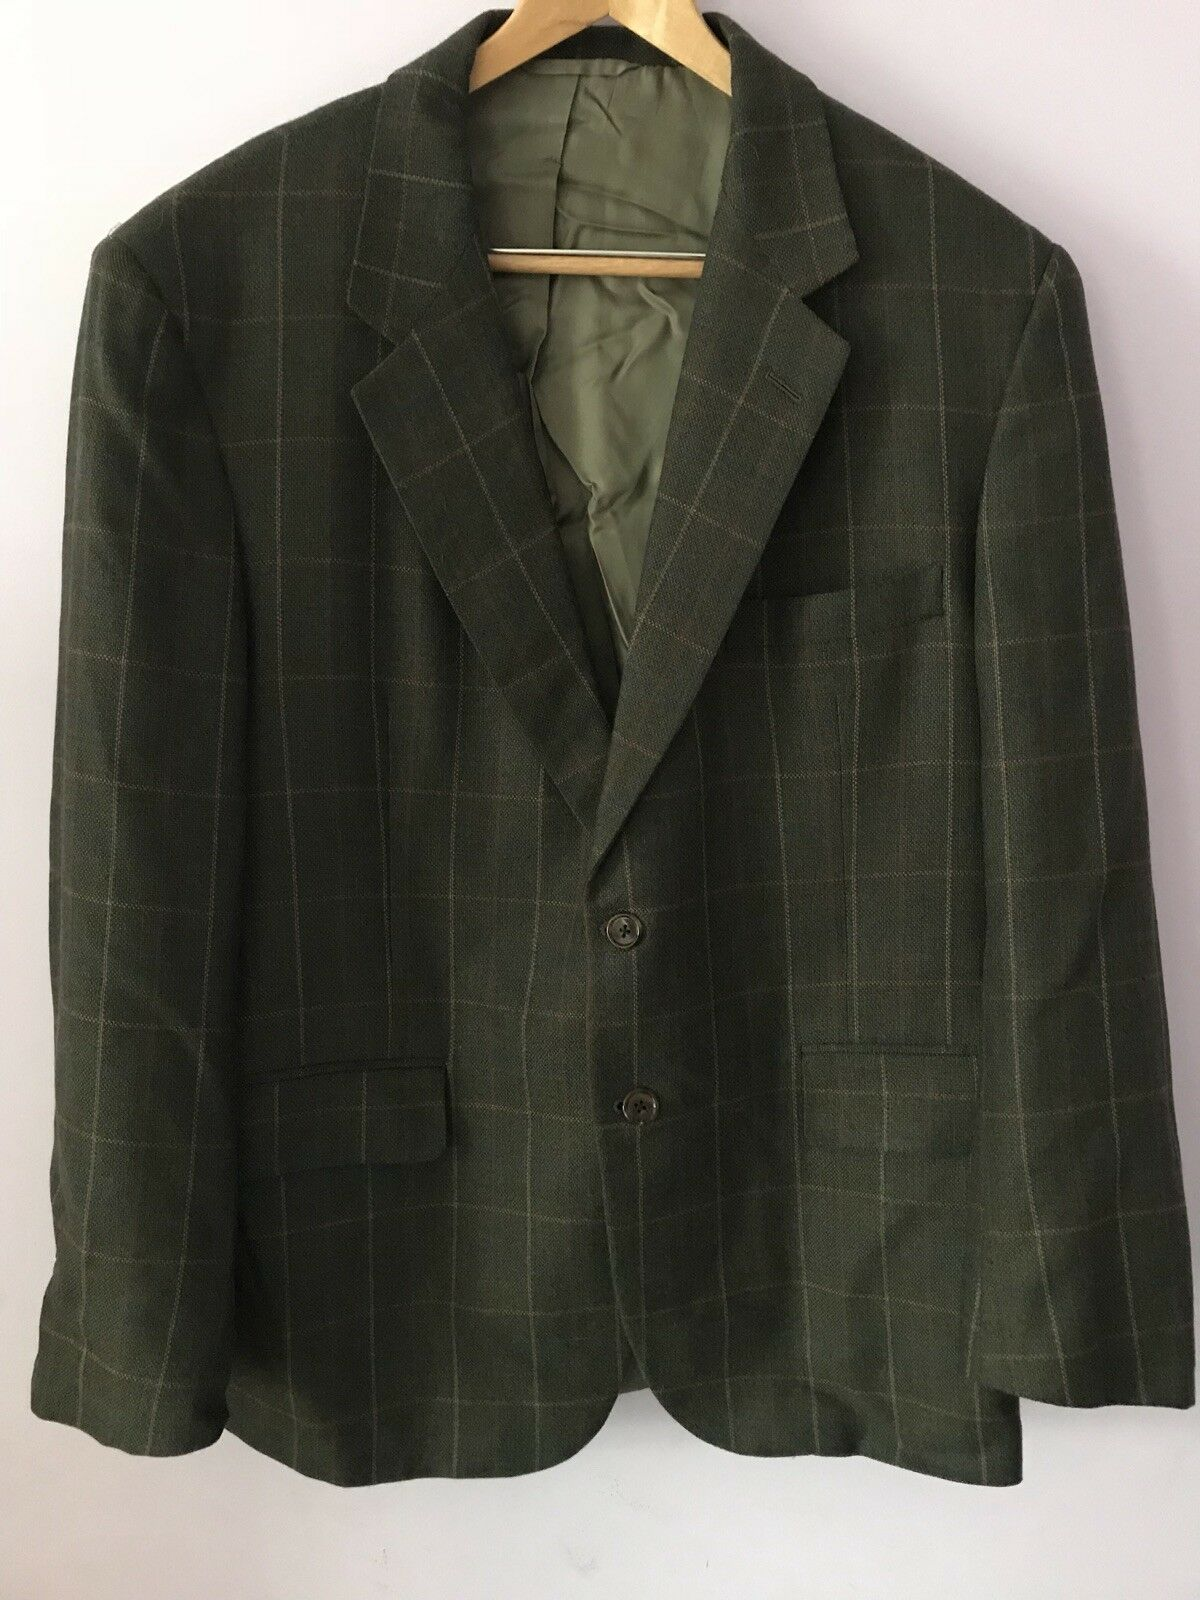 Men's Blazer, Windowpane Pattern, 2-button, No Vent, 42, Martin Greenfield NYC